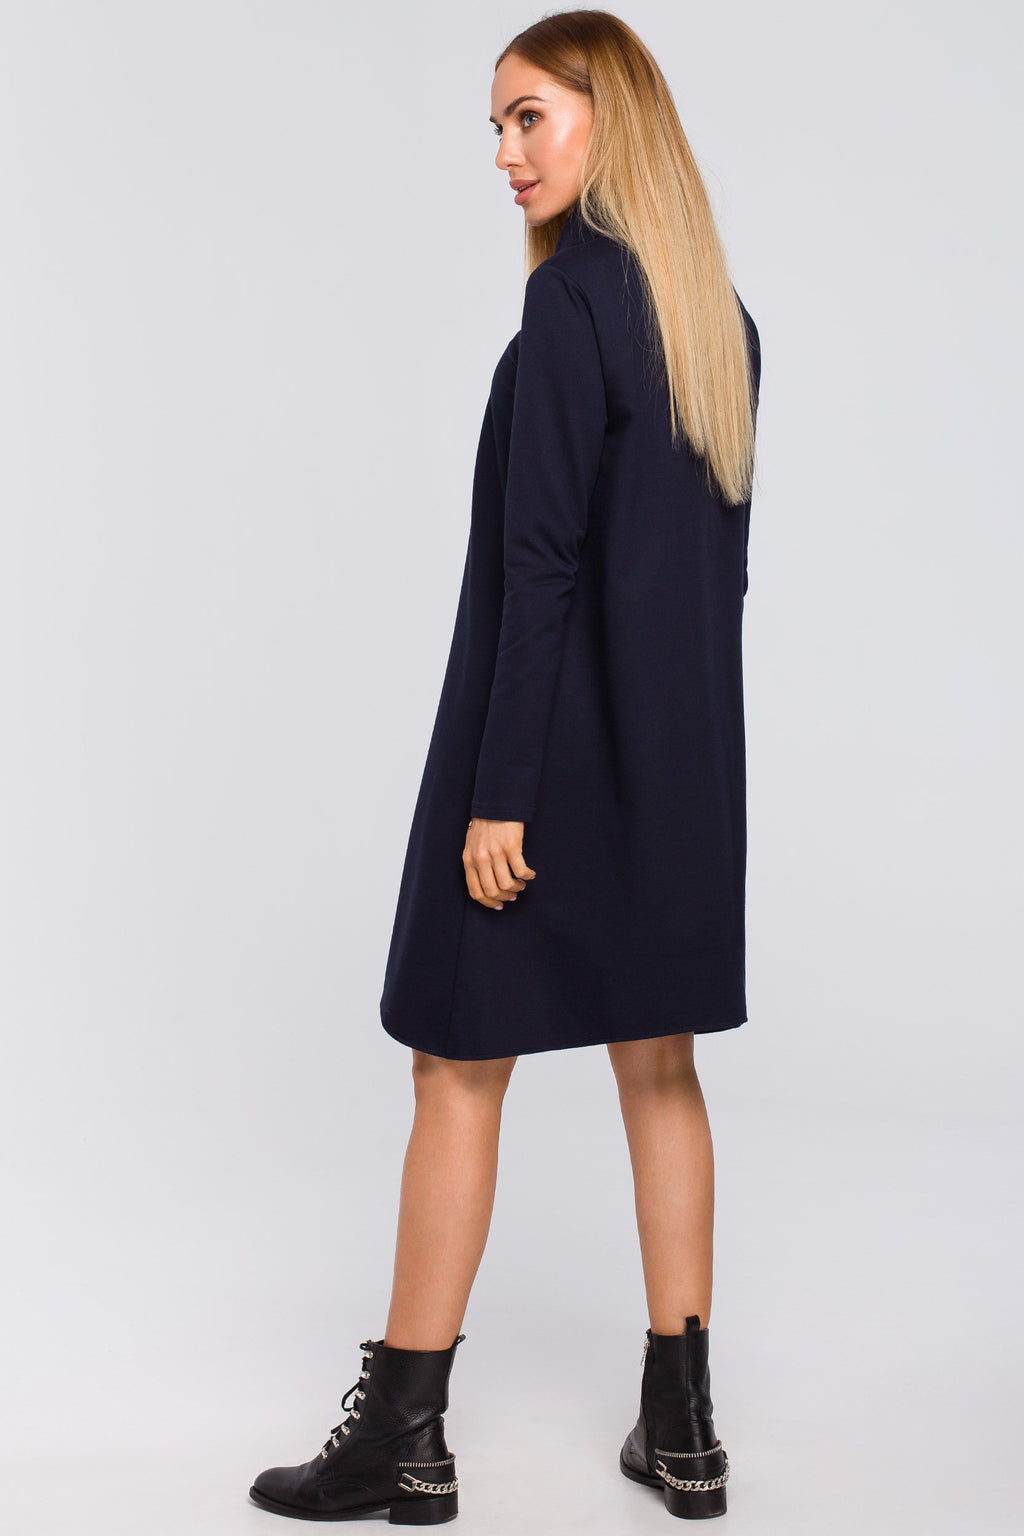 Navy Blue Cotton Turtleneck Trapeze Dress - So Chic Boutique